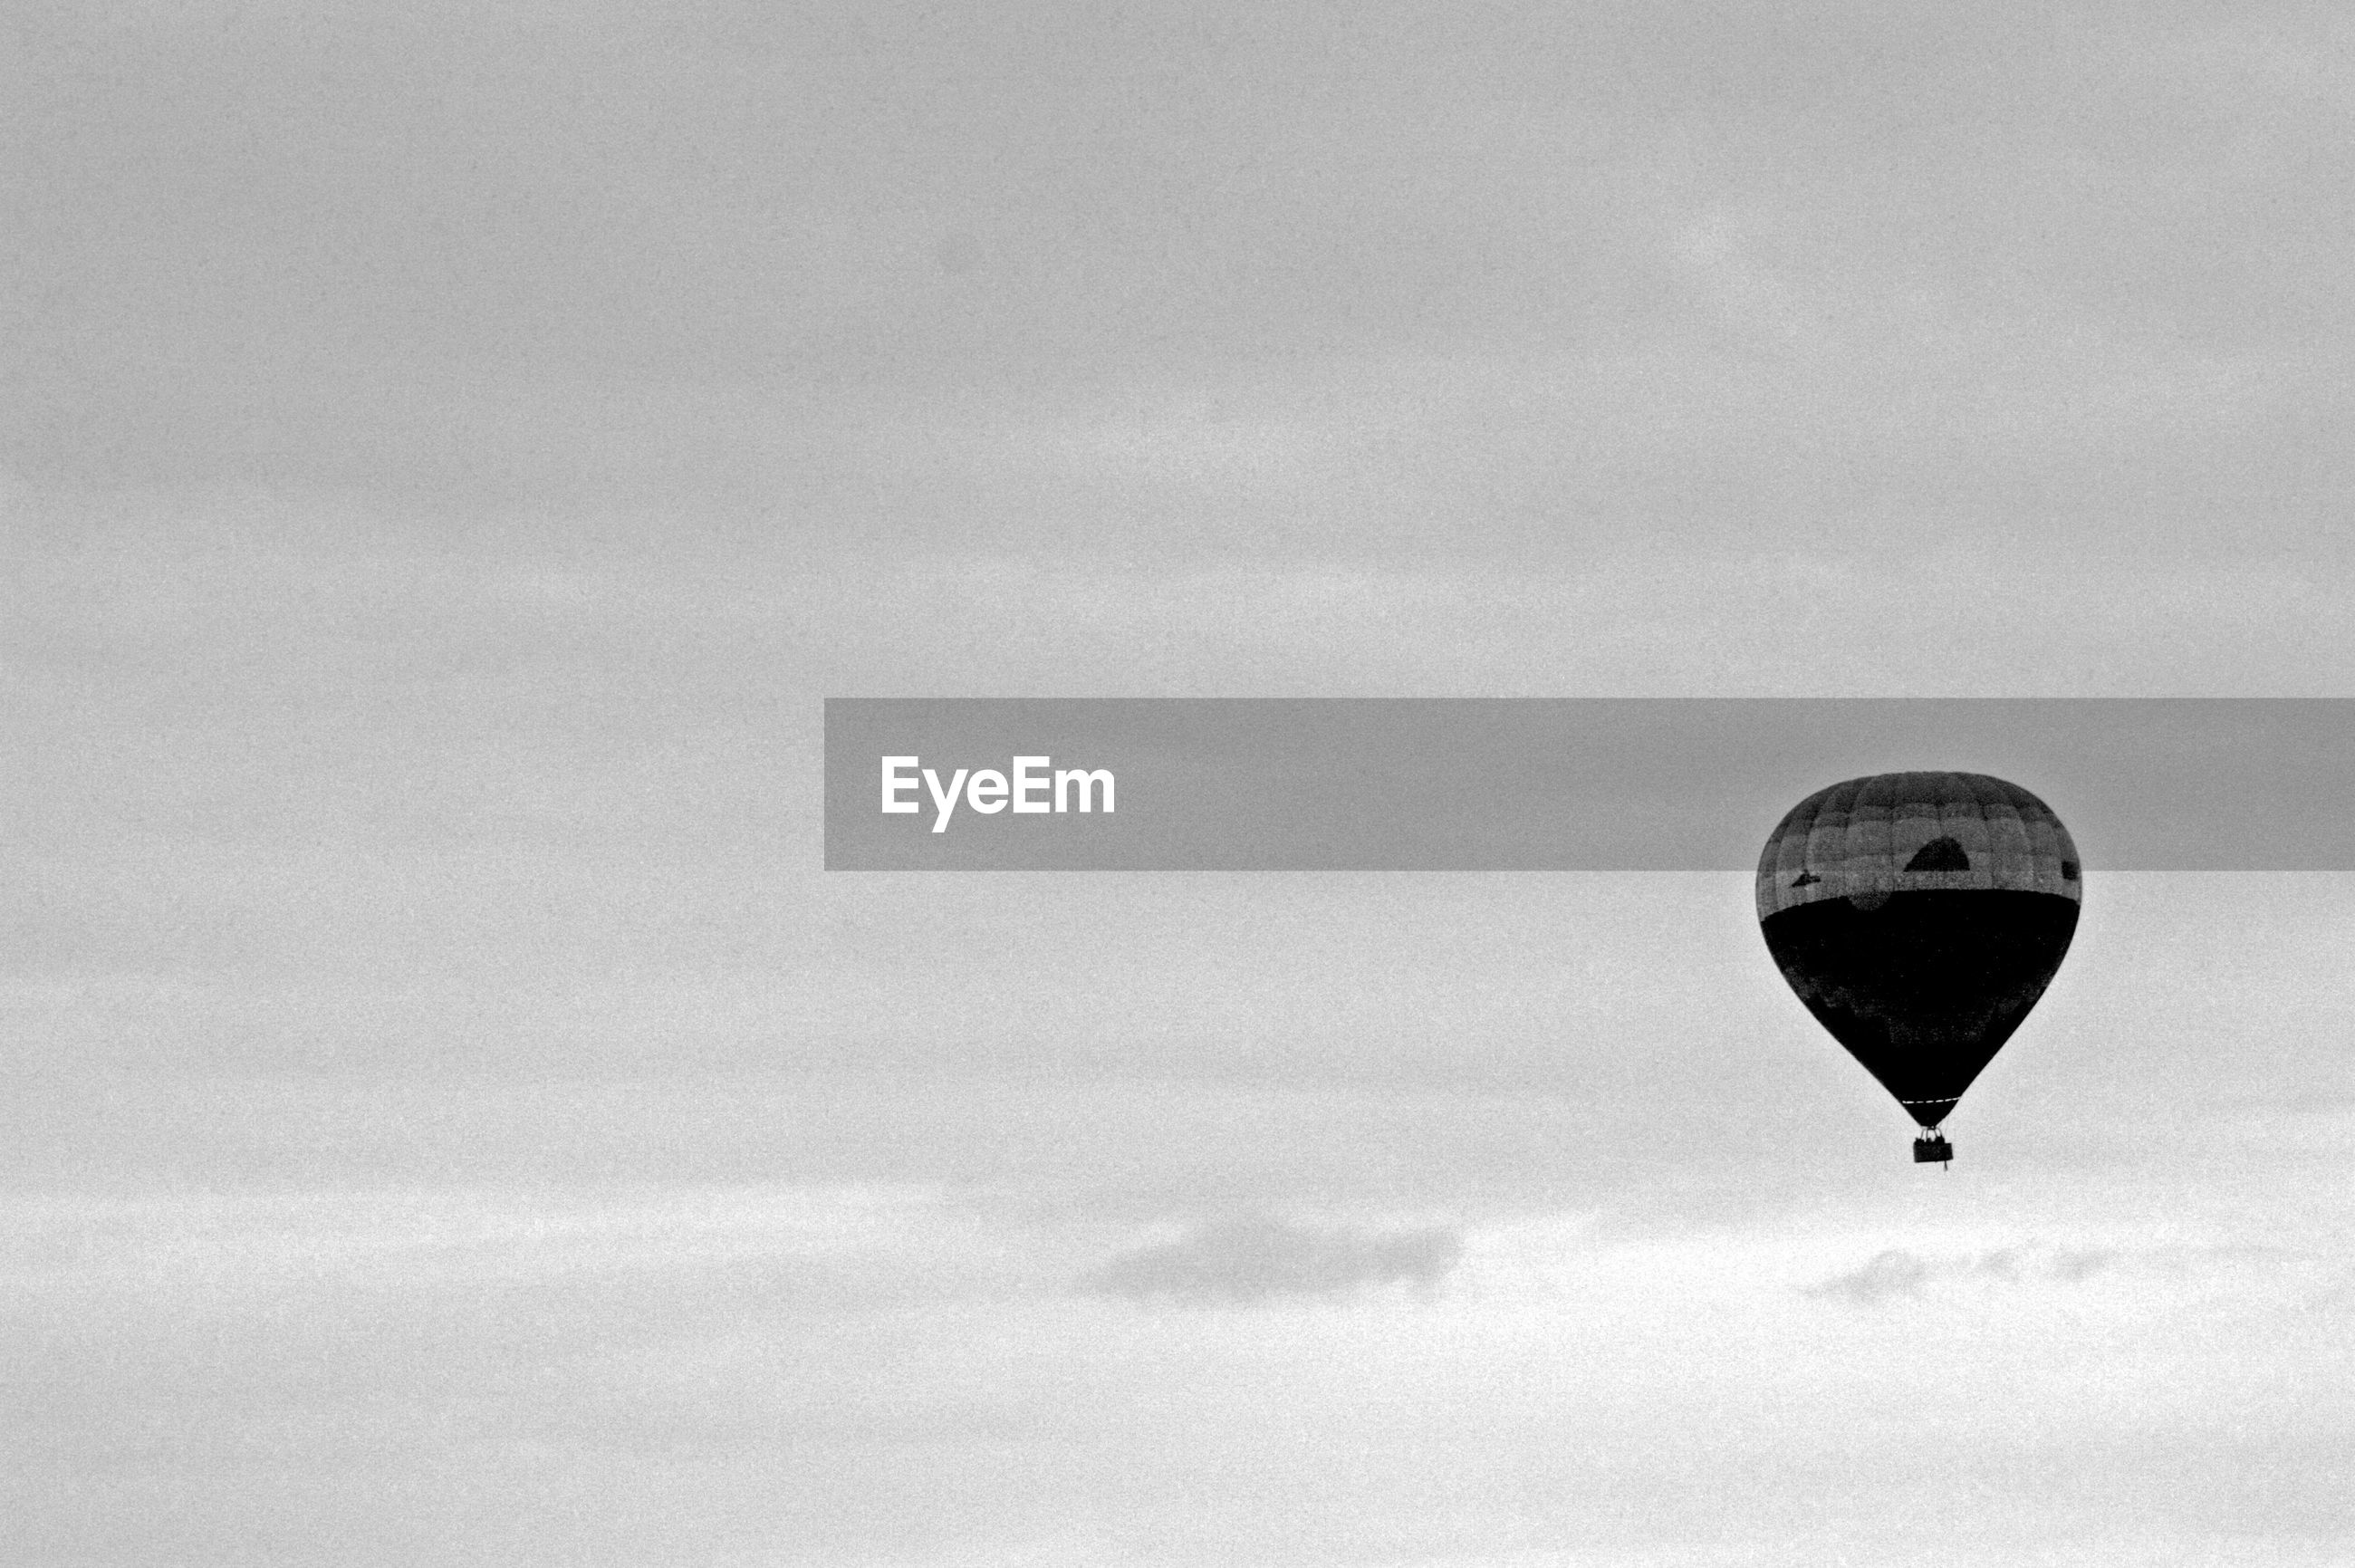 Scenic view of hot air balloon flying against sky